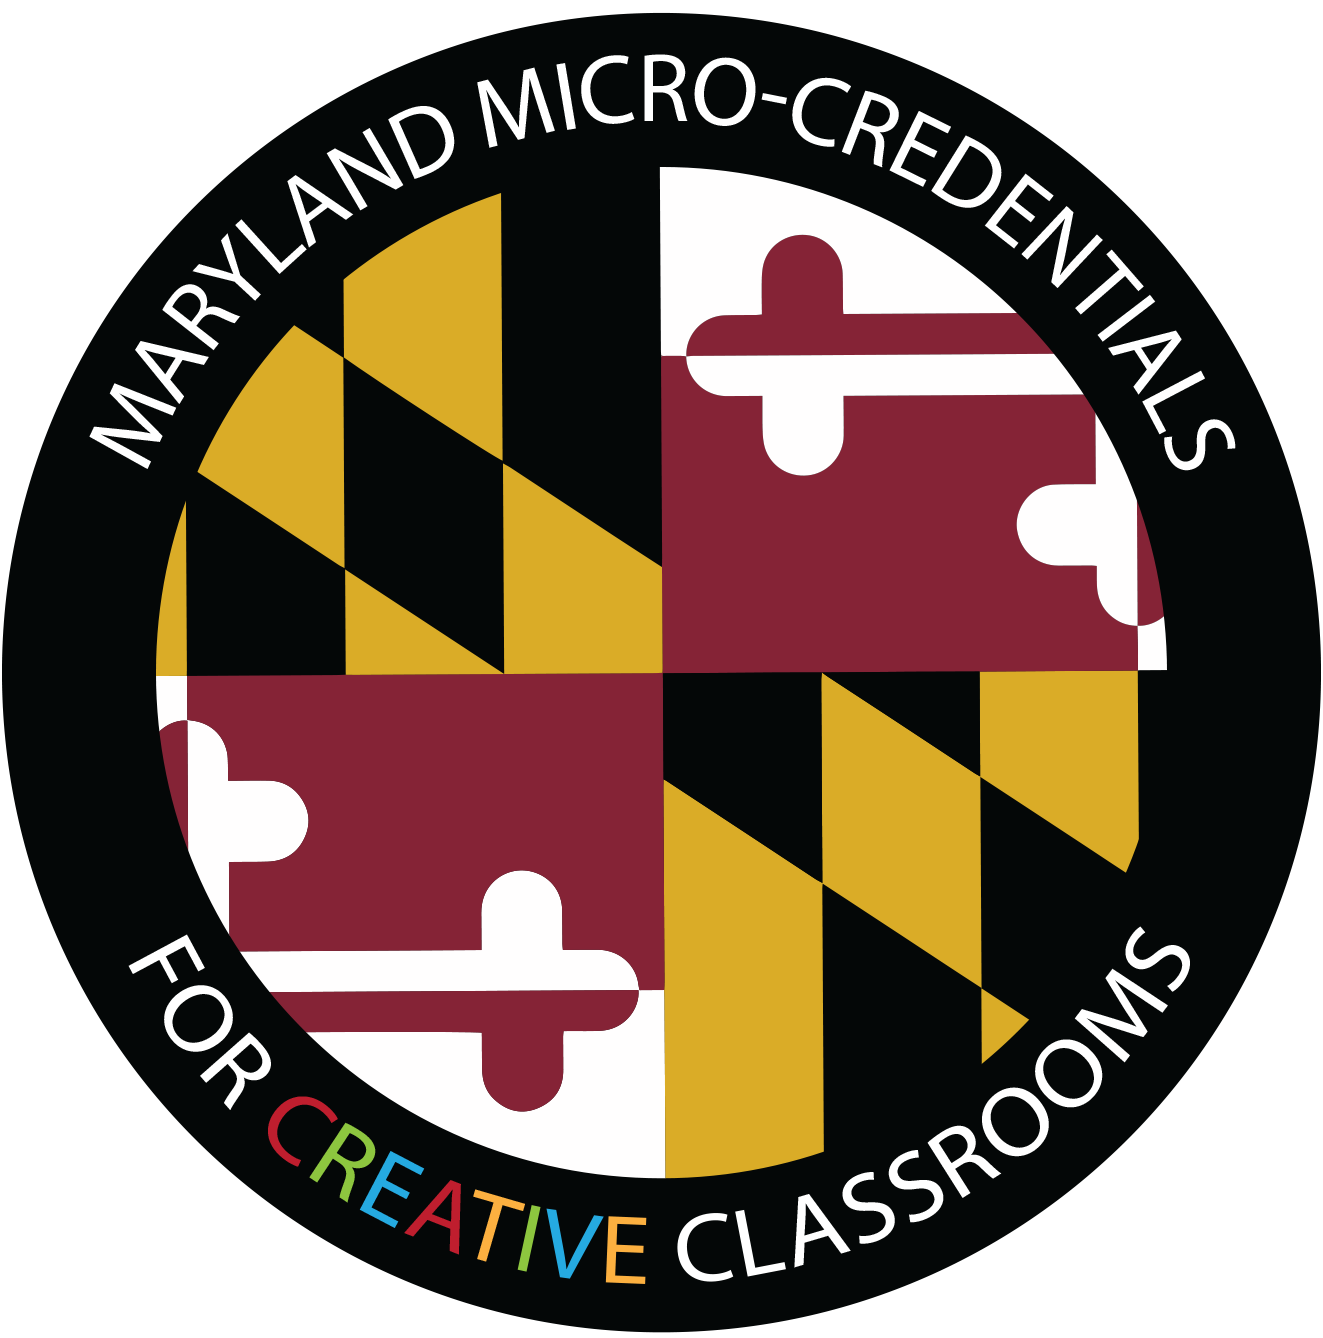 Maryland Micro-Credentials for Creative Classrooms